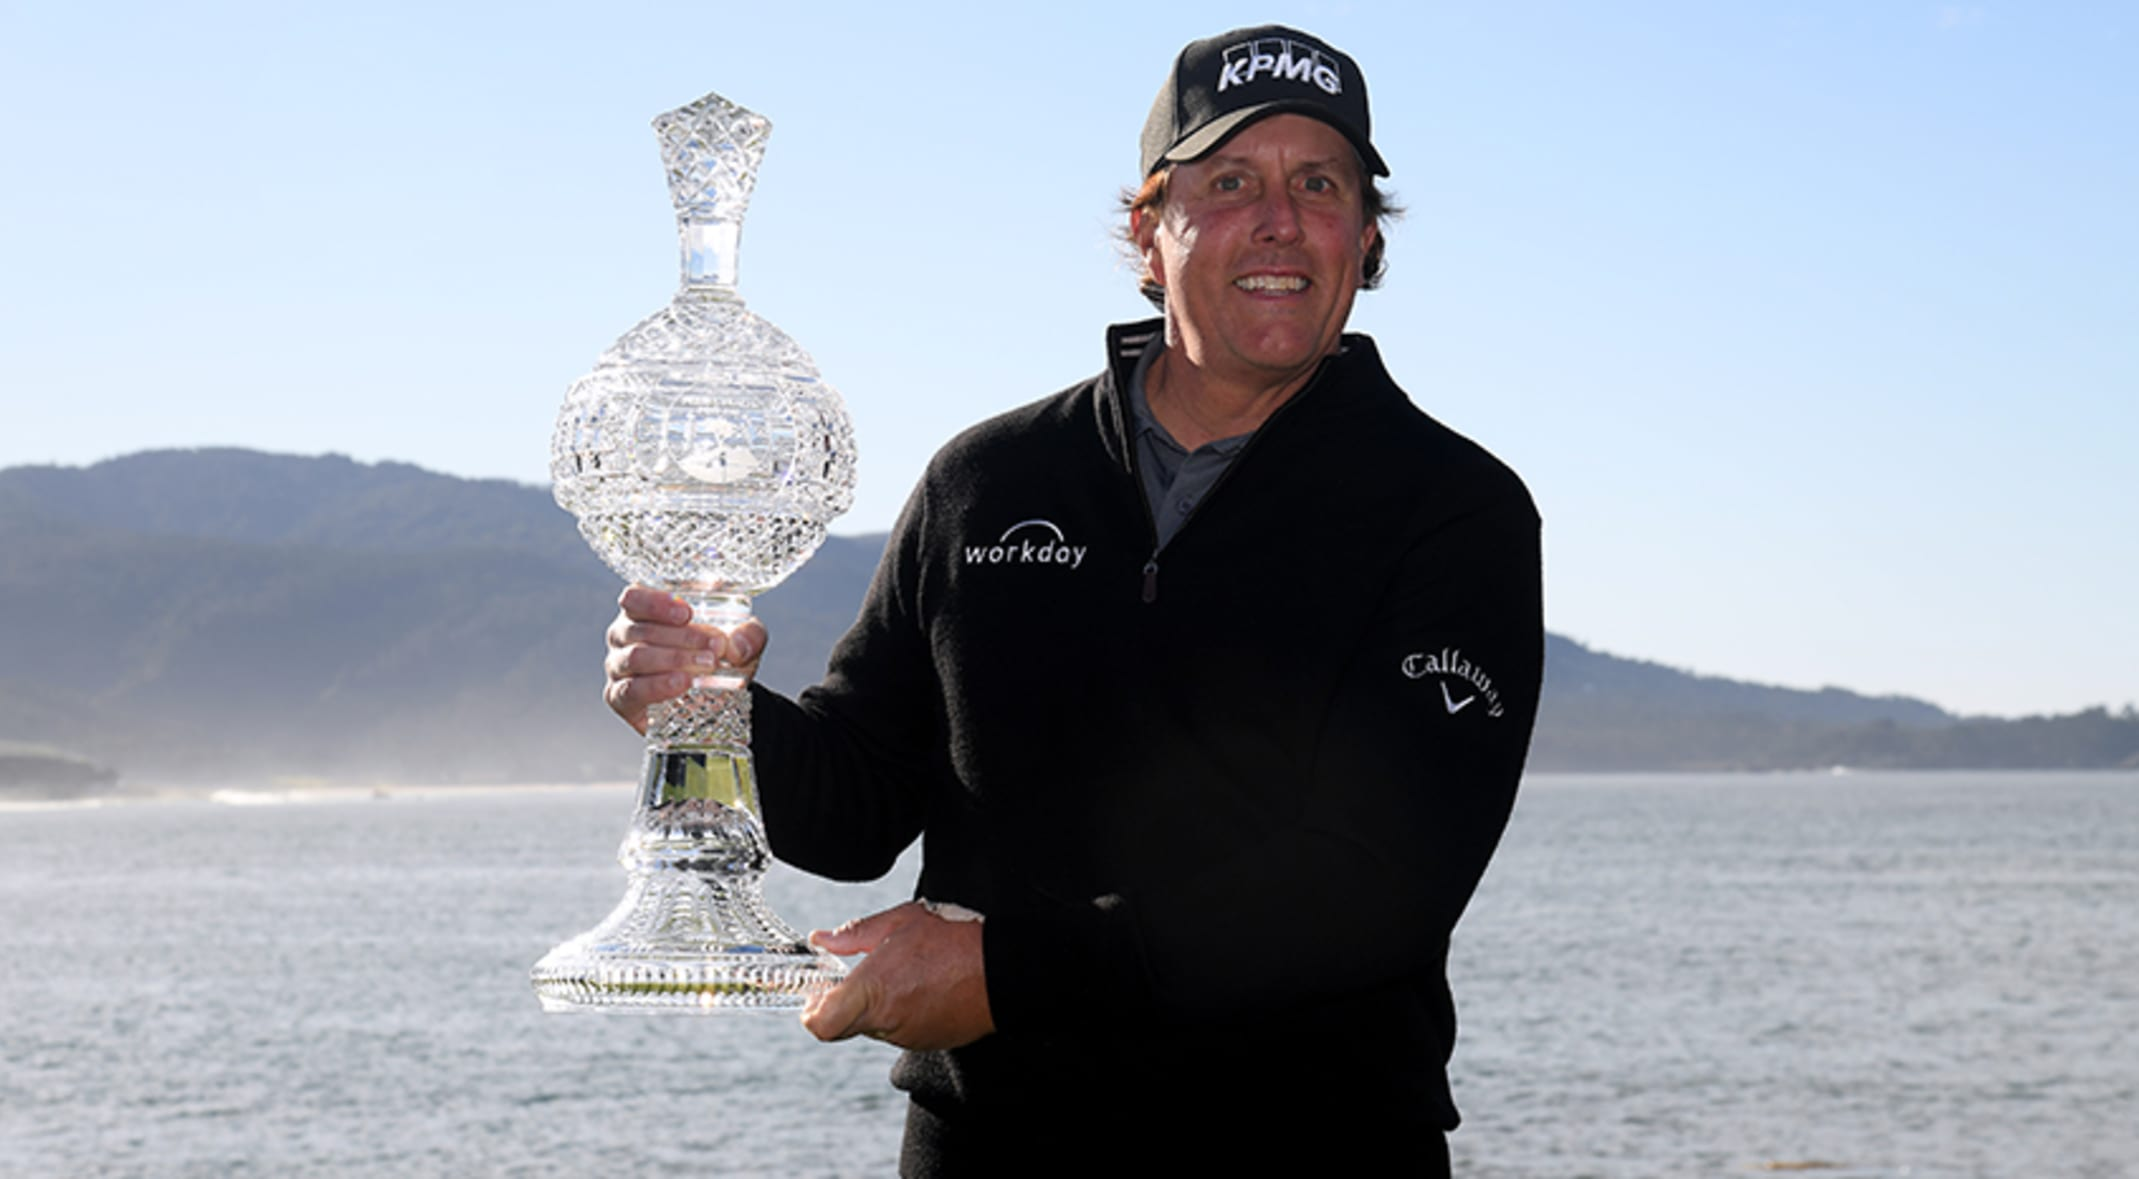 Defending champion Phil Mickelson